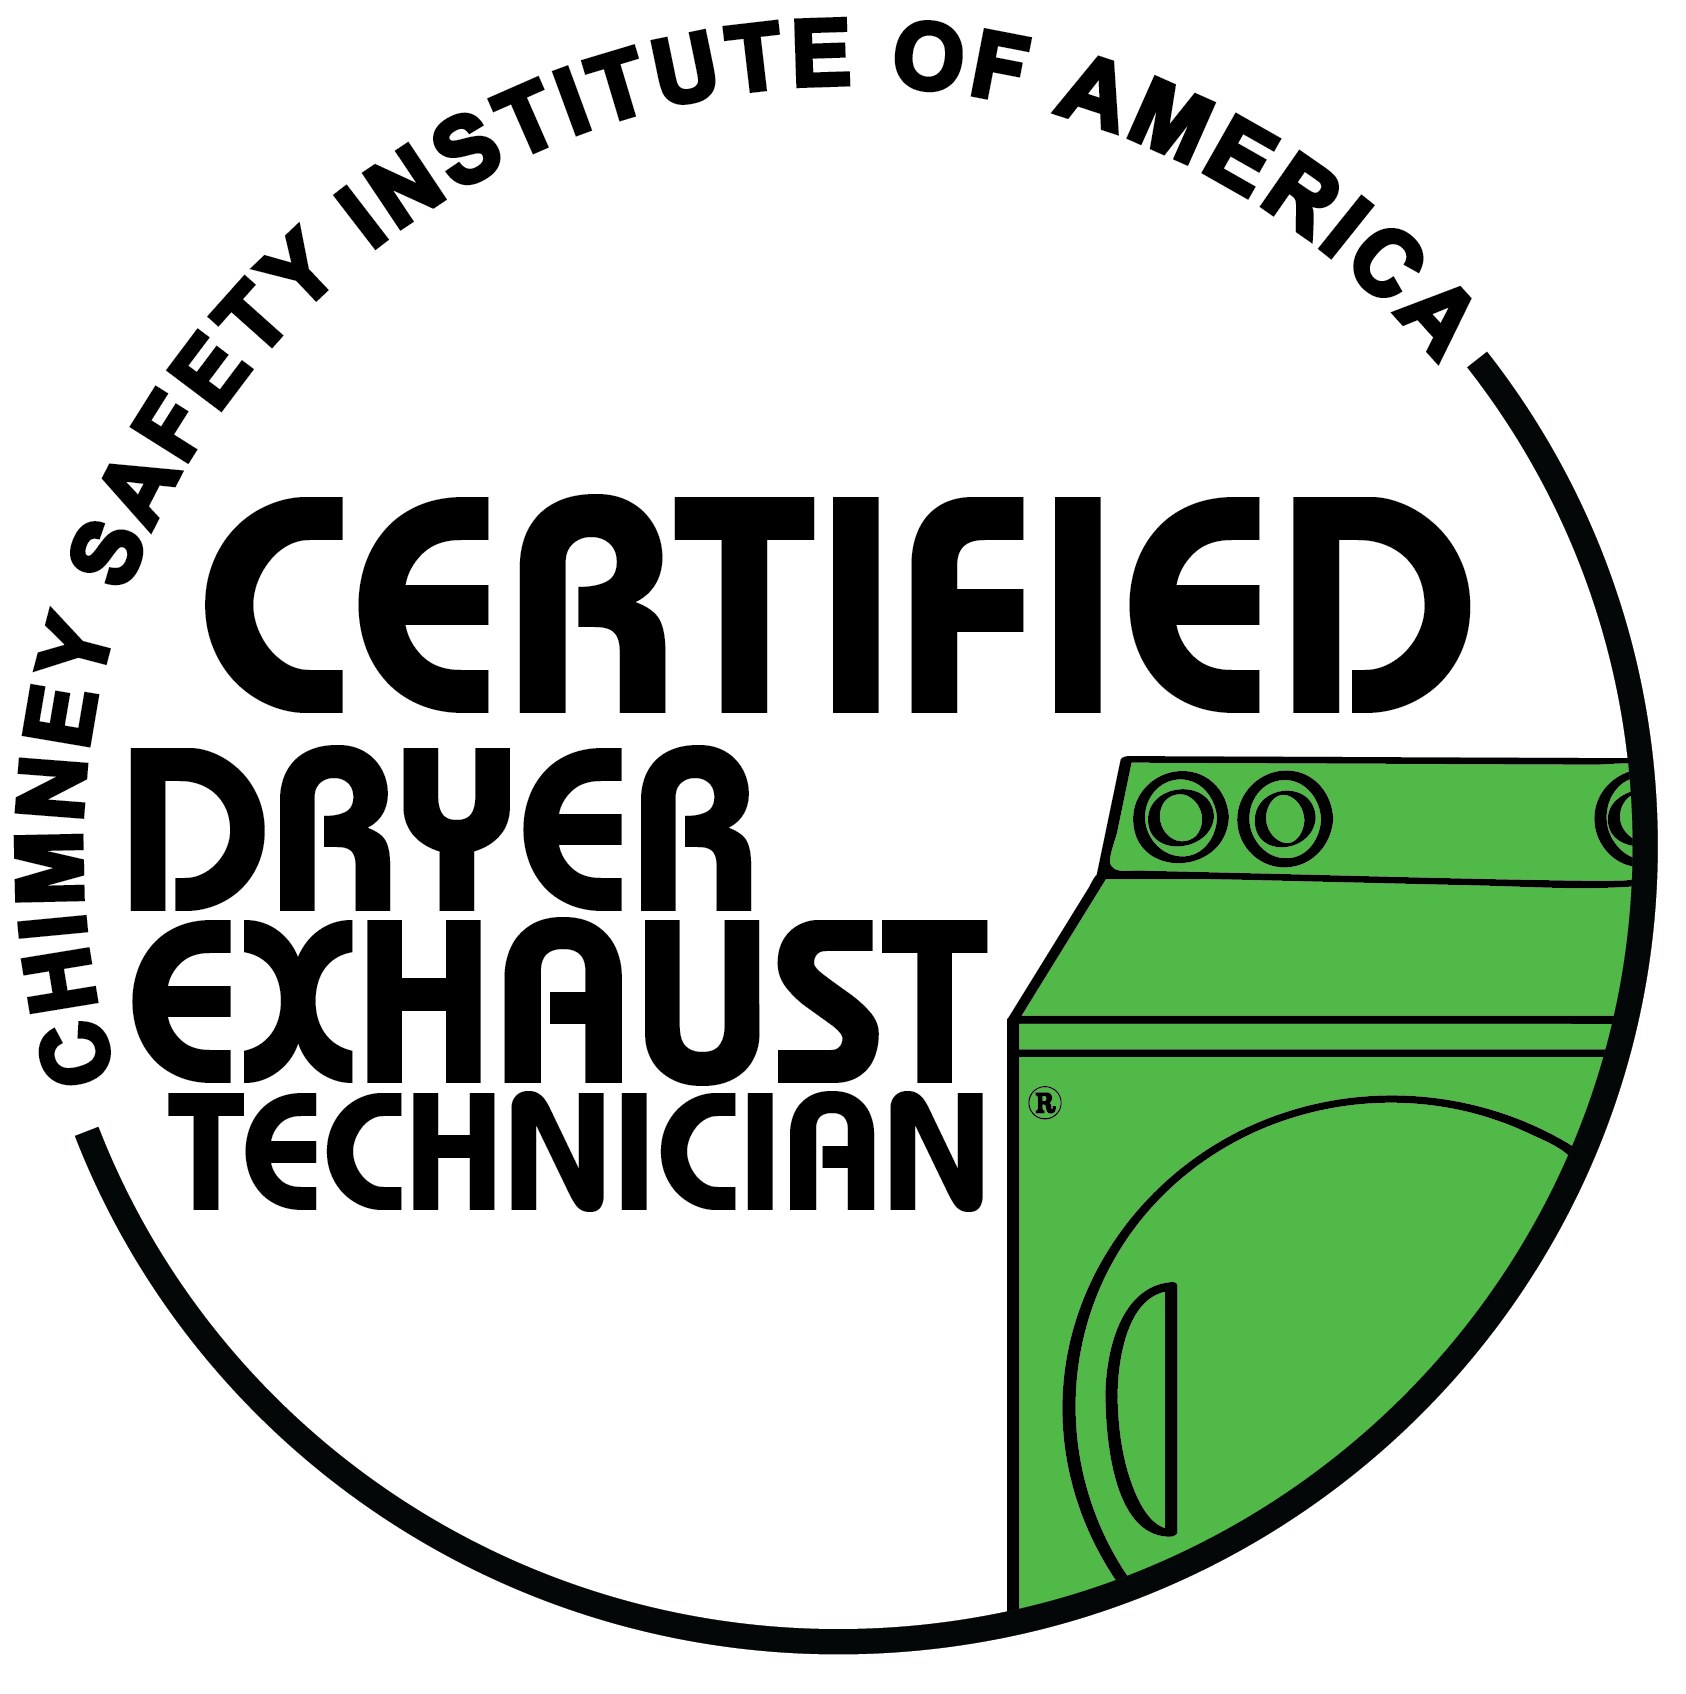 Csia Certified Dryer Exhaust Technician Review Exam Portland